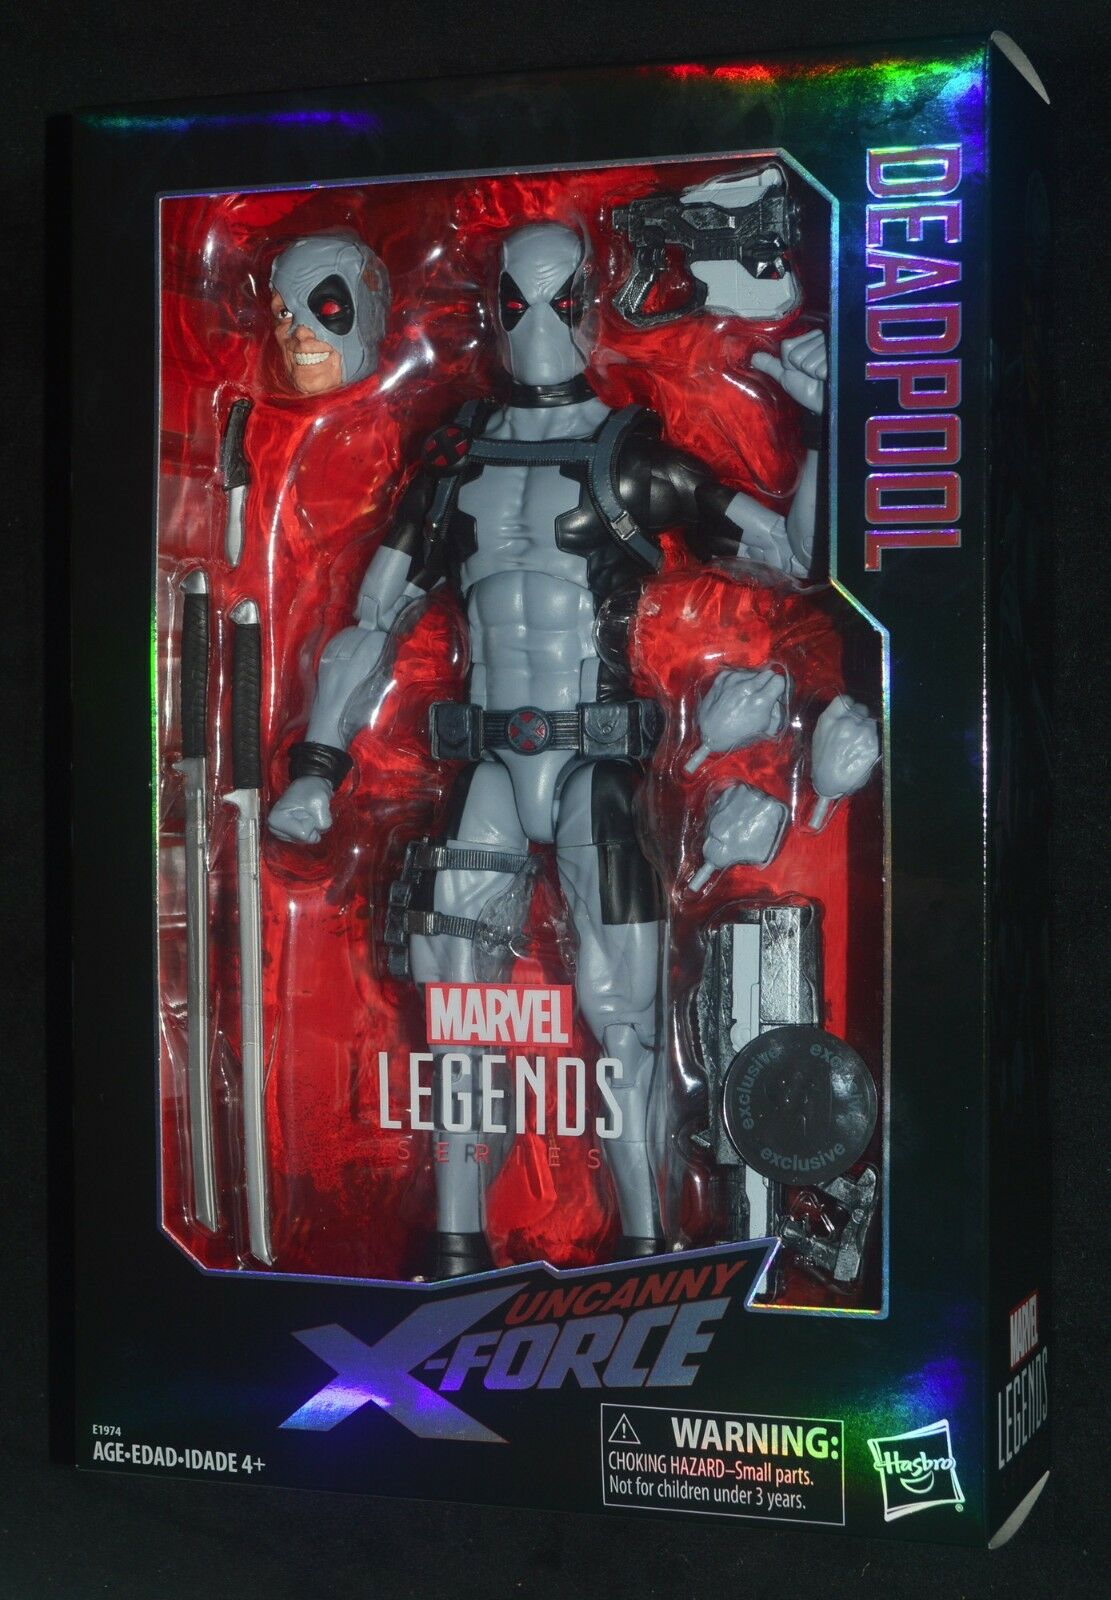 Fr deadpool unheimlich x - force marvel - legenden.